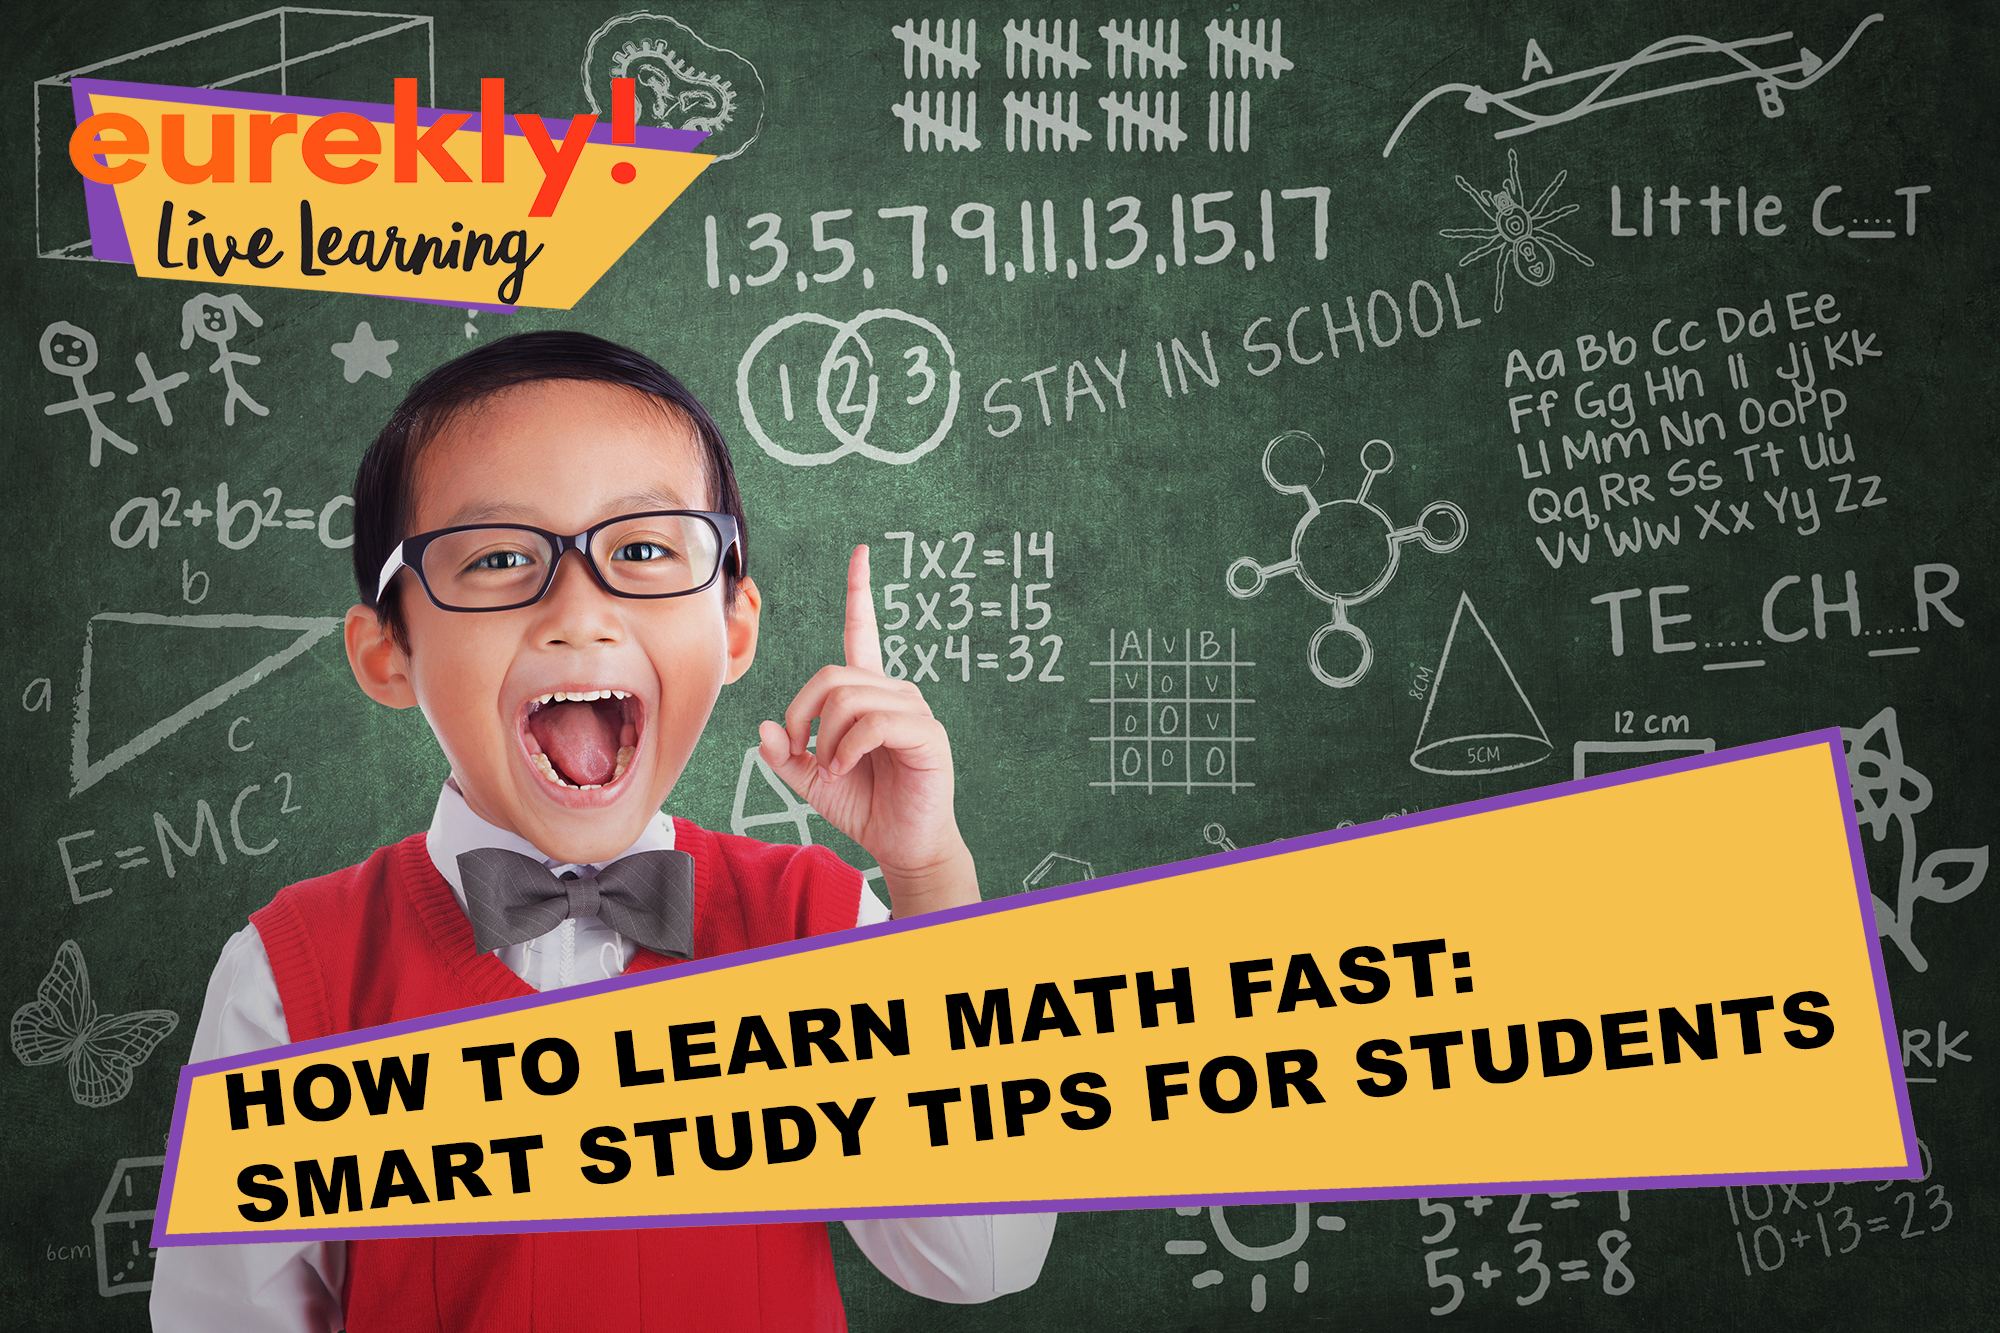 Learn Math FASTER, Not Harder! Super Useful Tips for Math Students